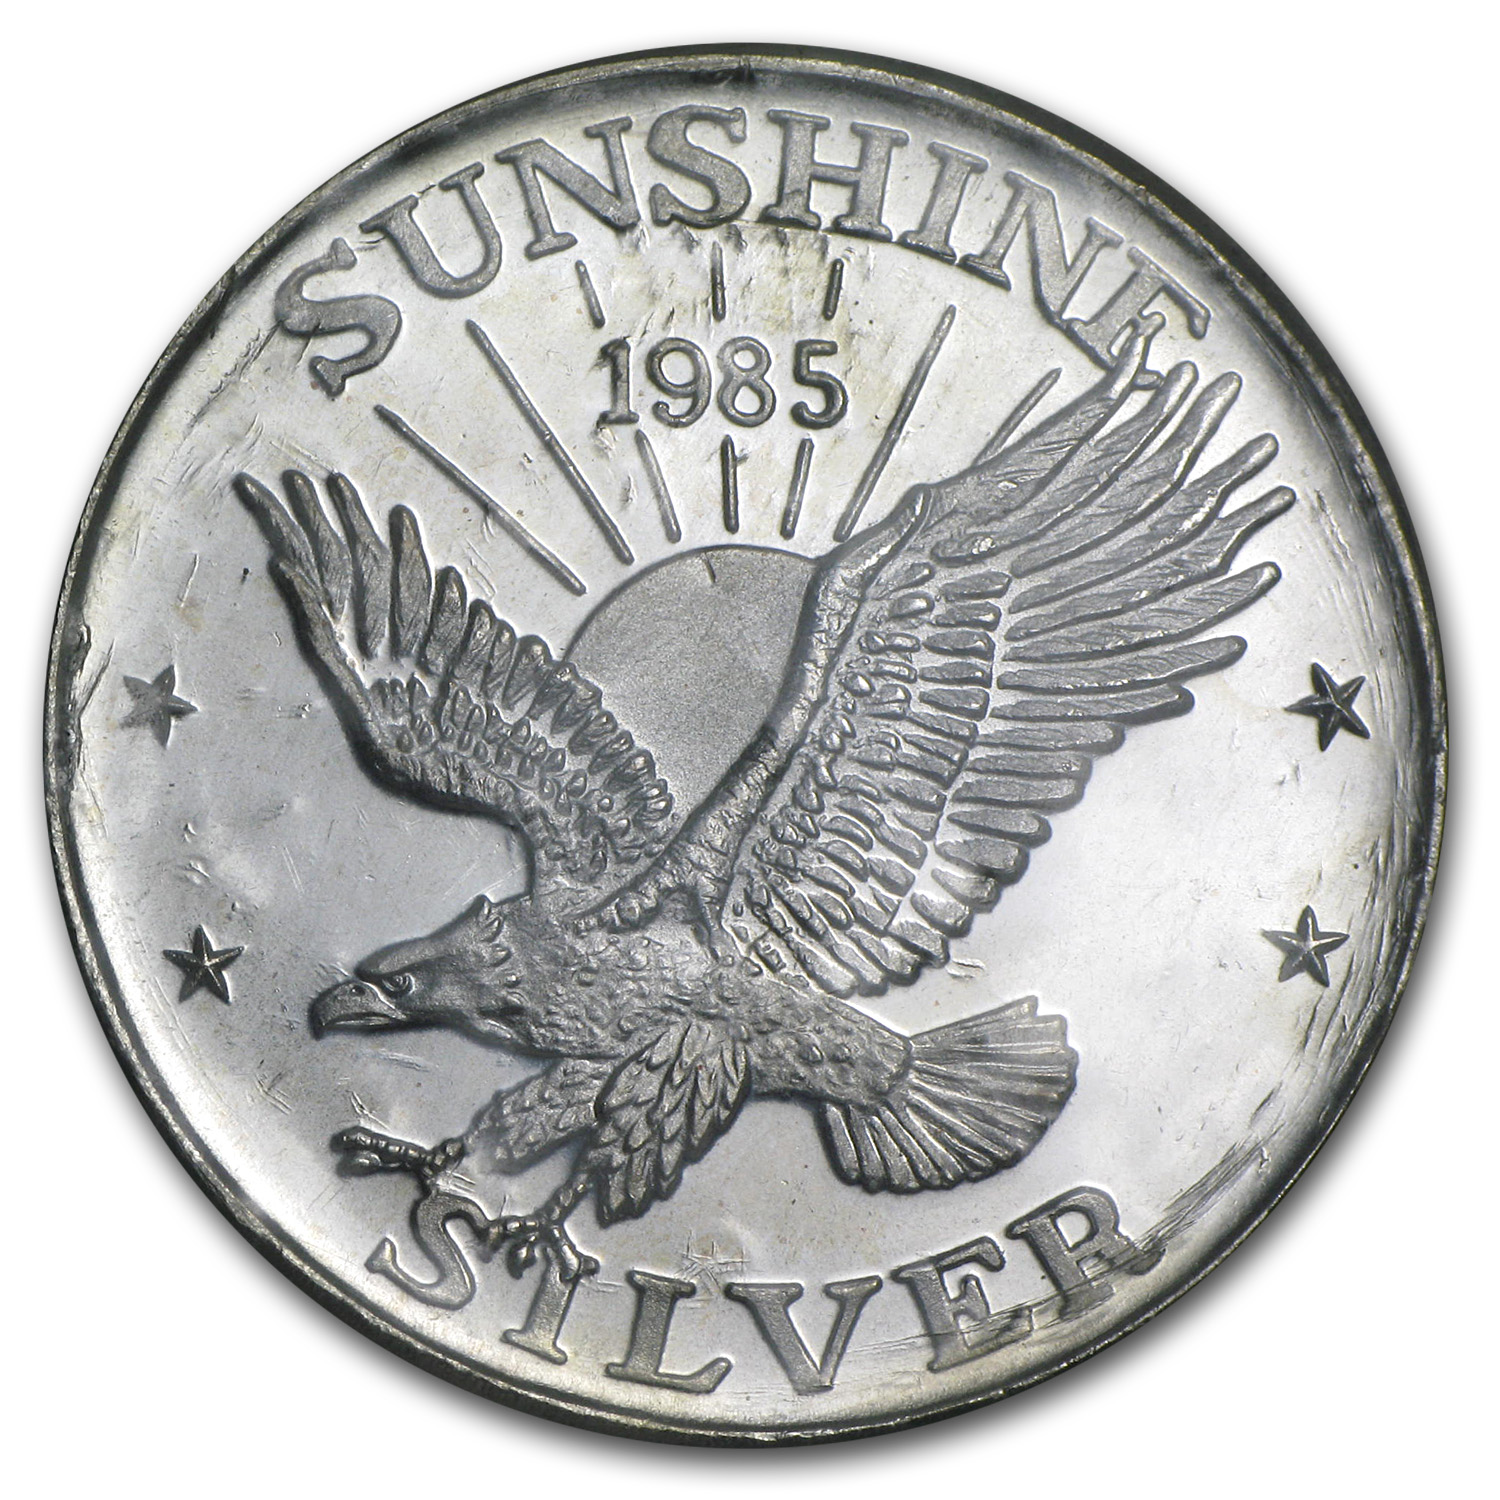 1 oz Silver Round - Sunshine Mining (Sealed/Very Nice)